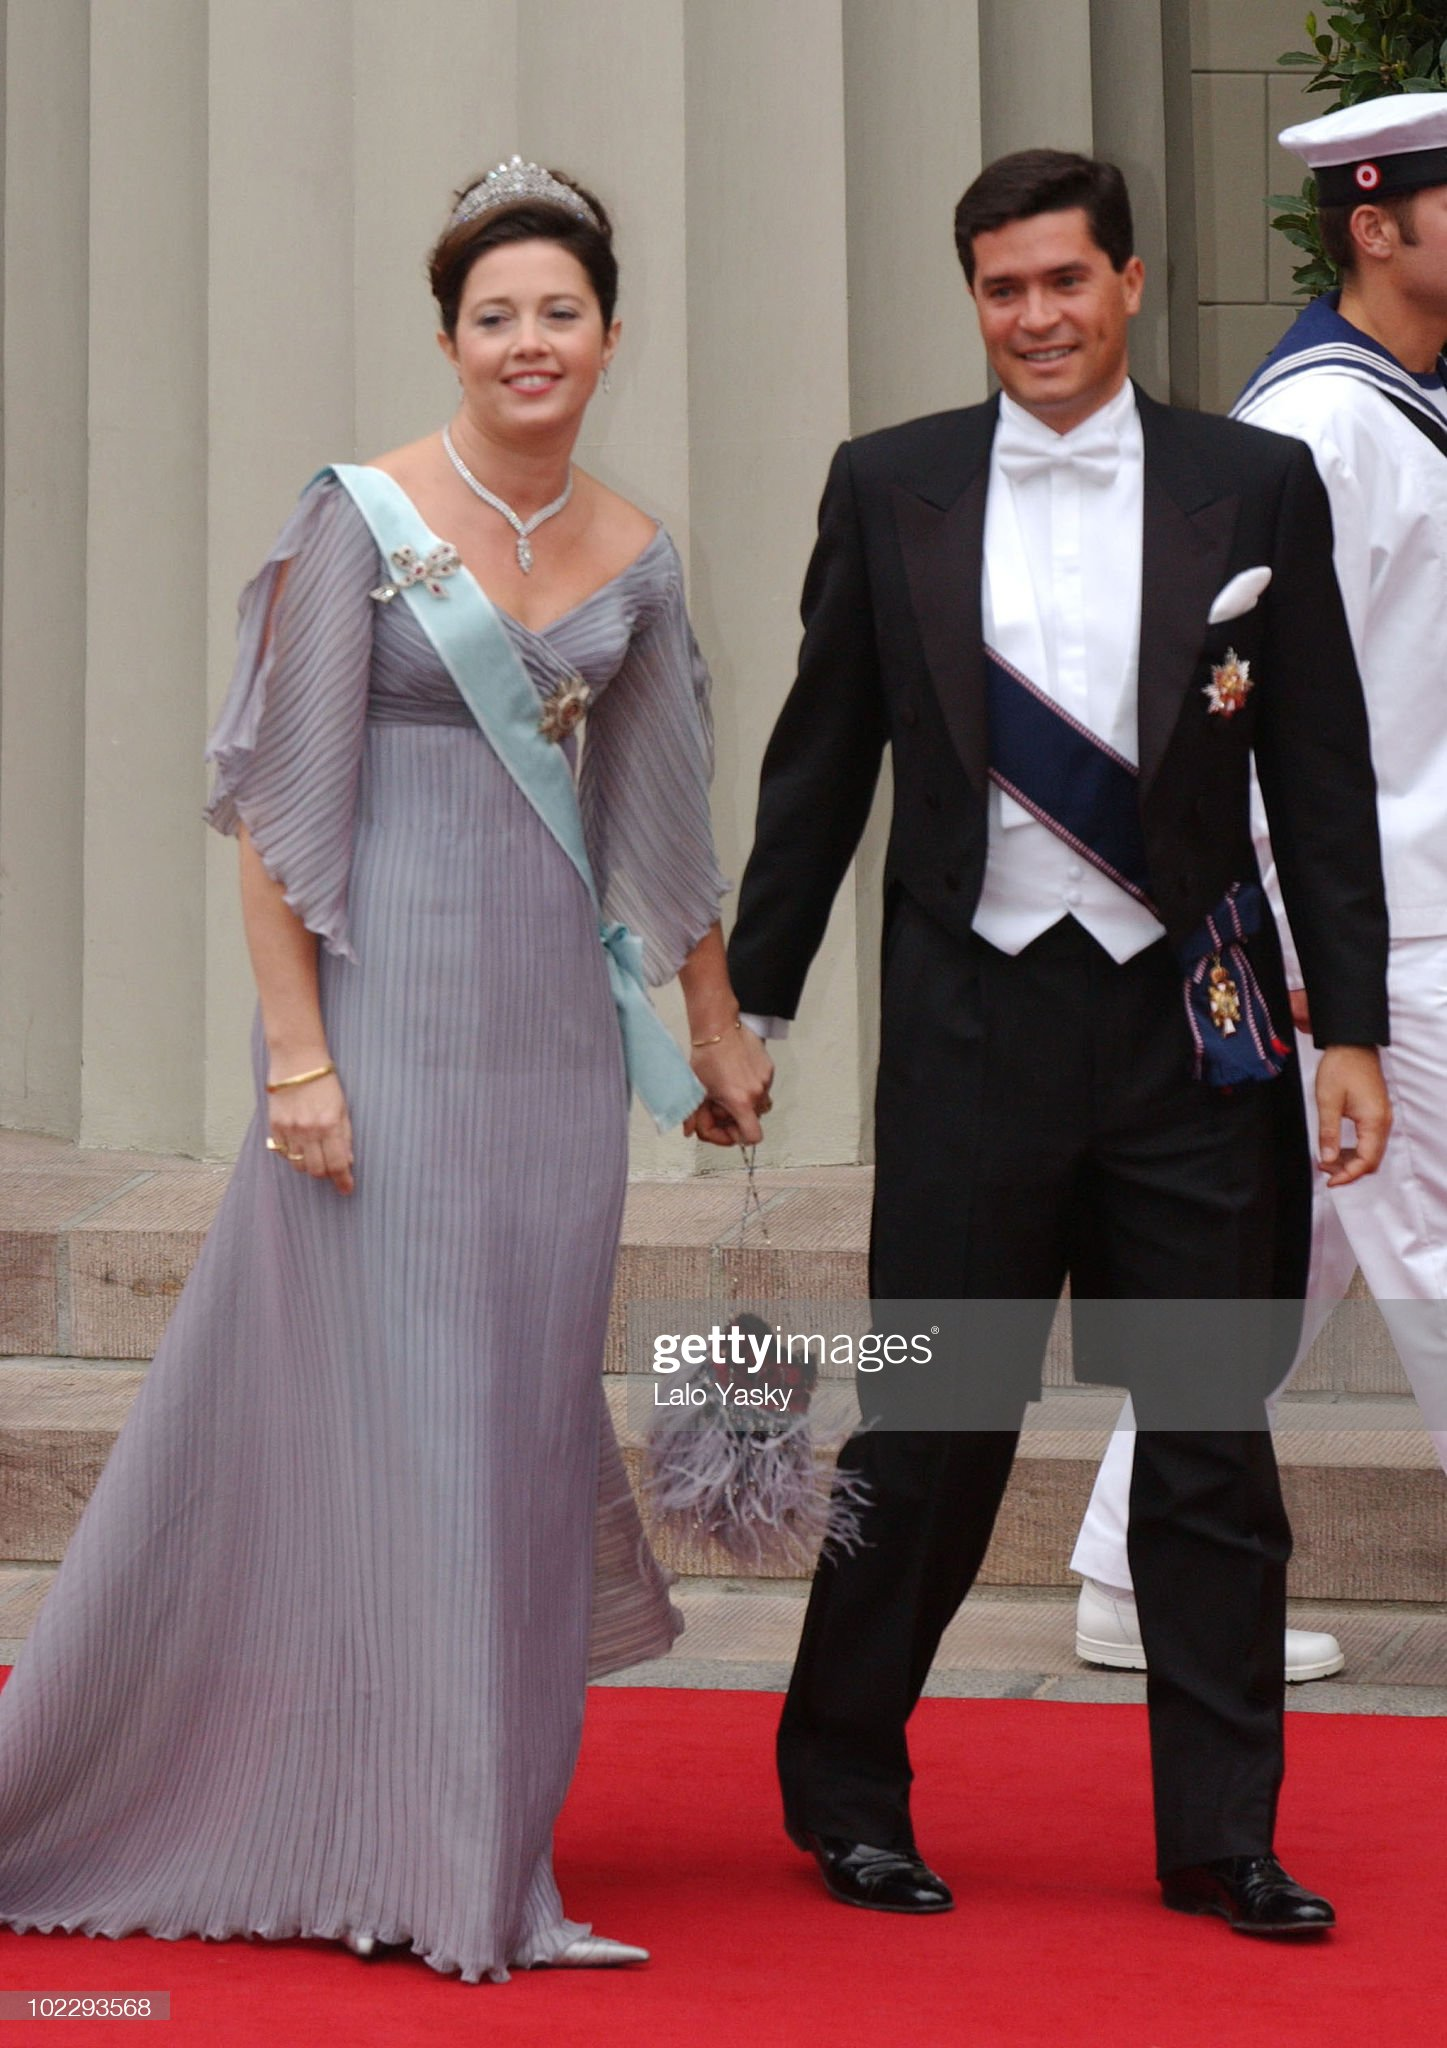 Crown Prince Frederik of Denmark and Australian Born Lawyer Mary Donaldson are Wed at the Vor Frue Kirke Cathedral in Central Copenhagen : News Photo